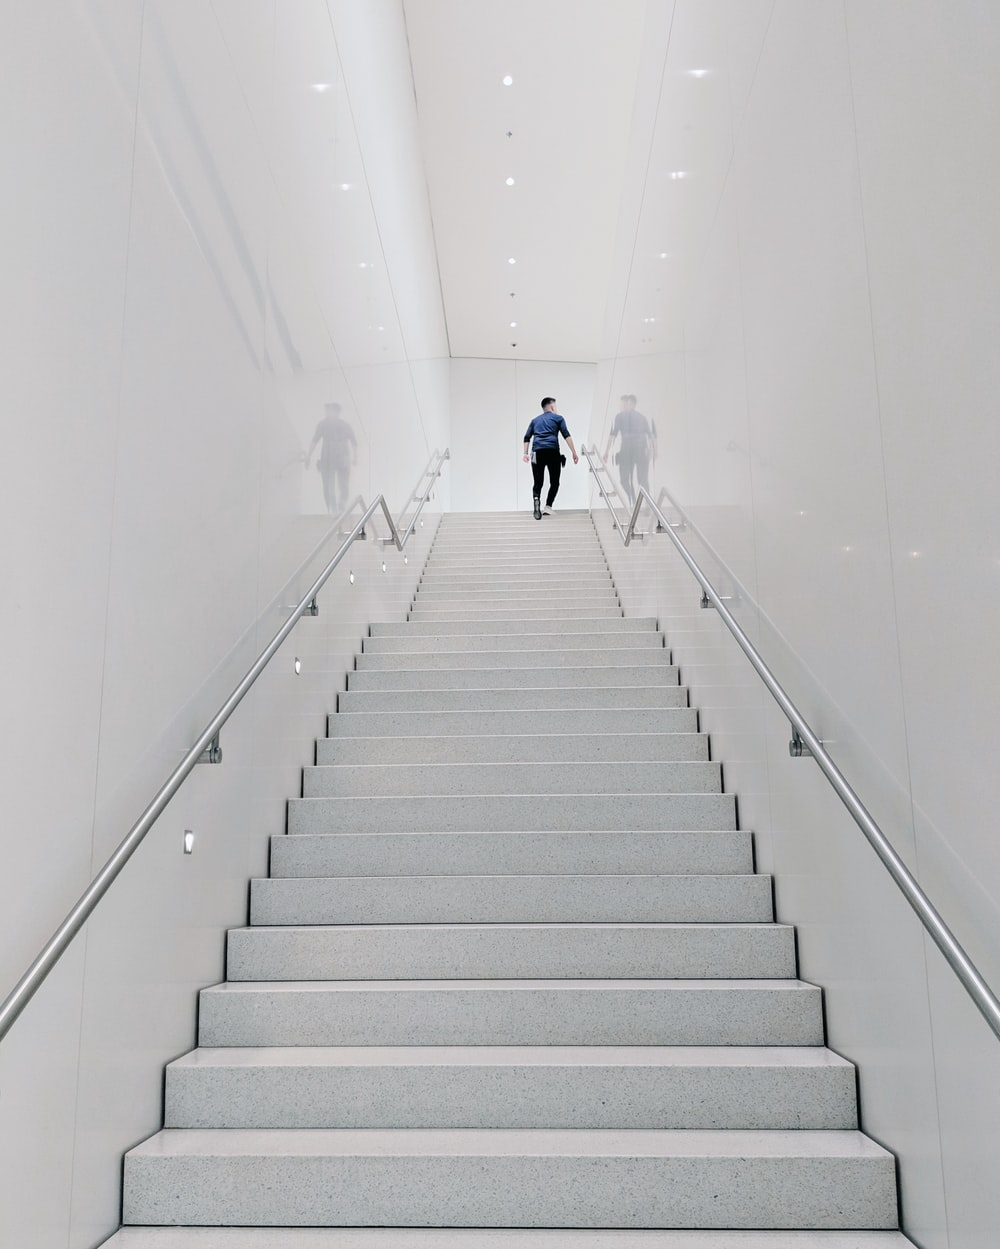 person climbing stairs